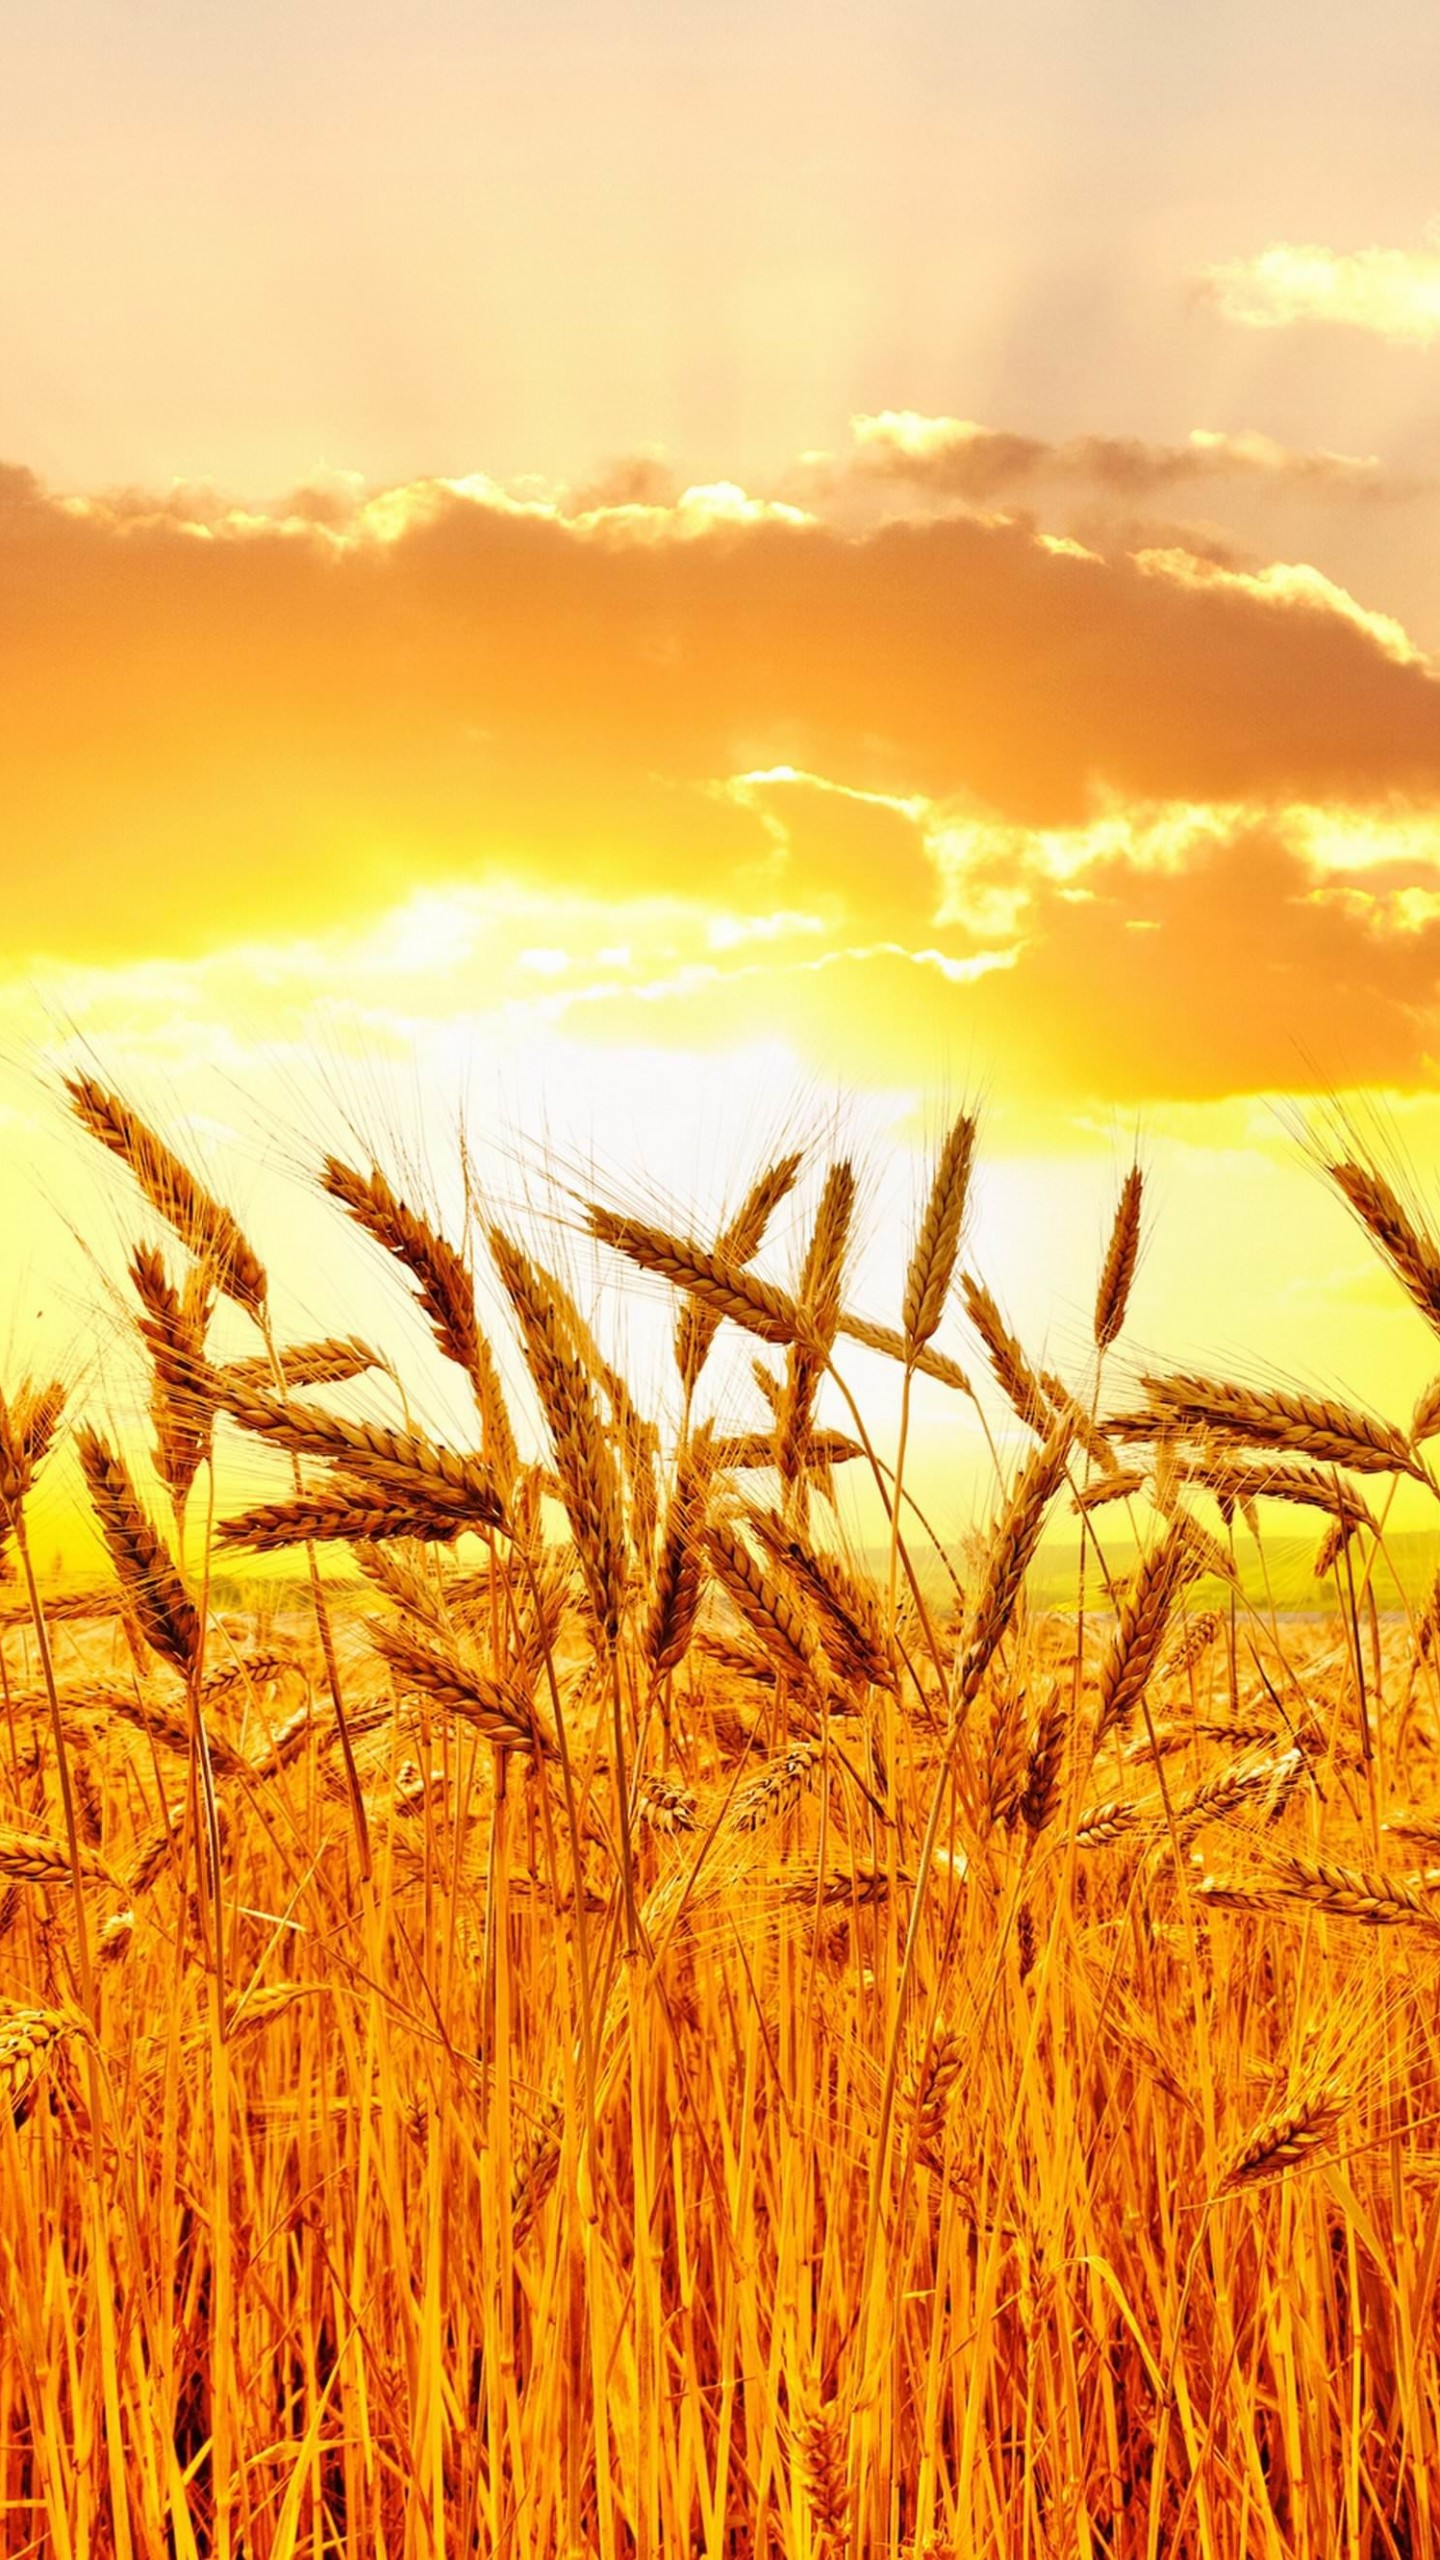 Golden Wheat Field At Sunset Wallpaper for SAMSUNG Galaxy Note 4